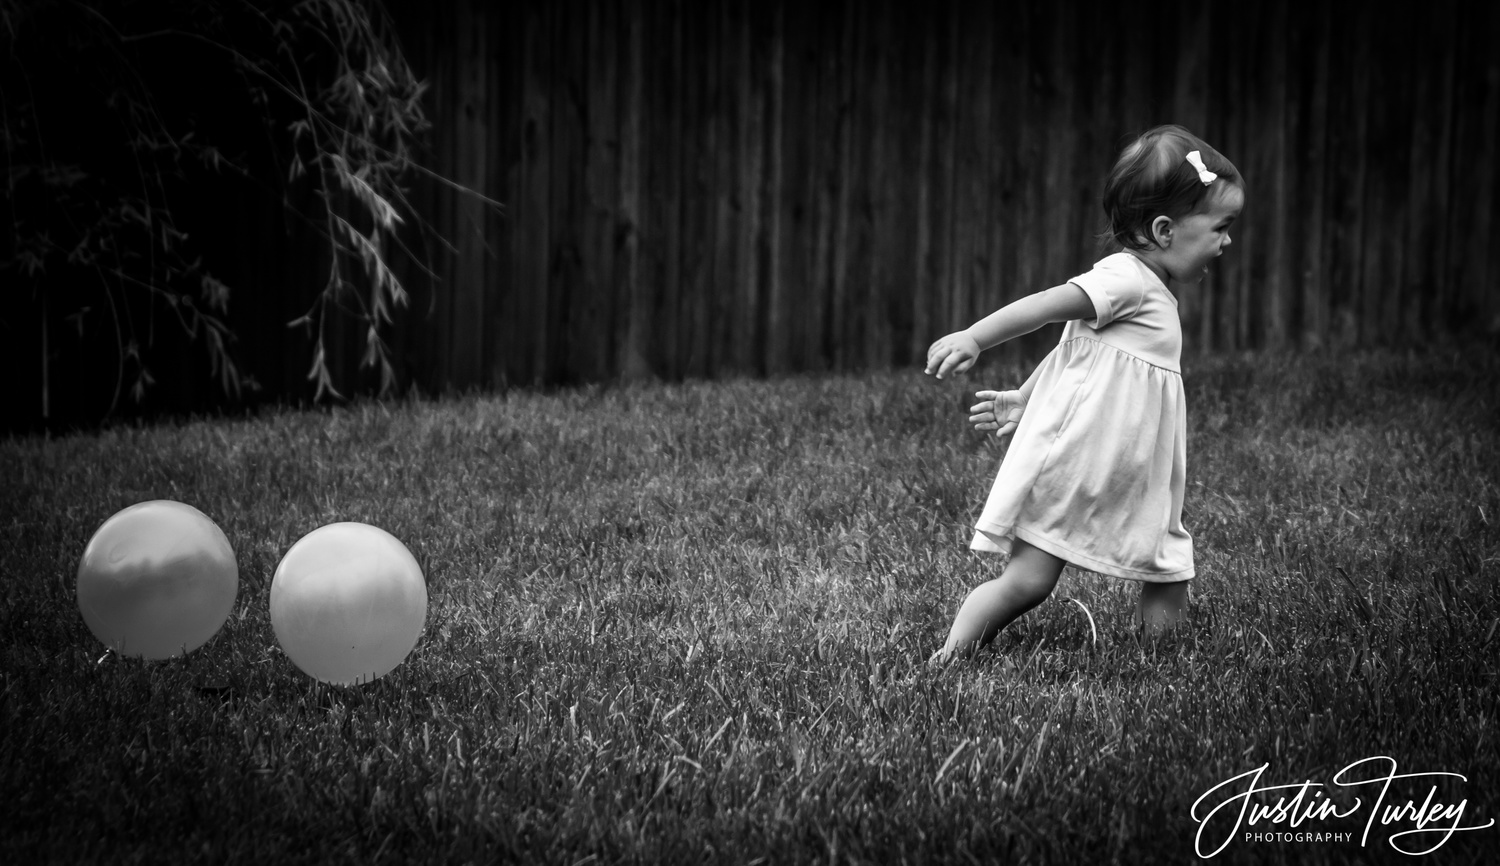 The Ballons are Chasing Me by Justin Turley